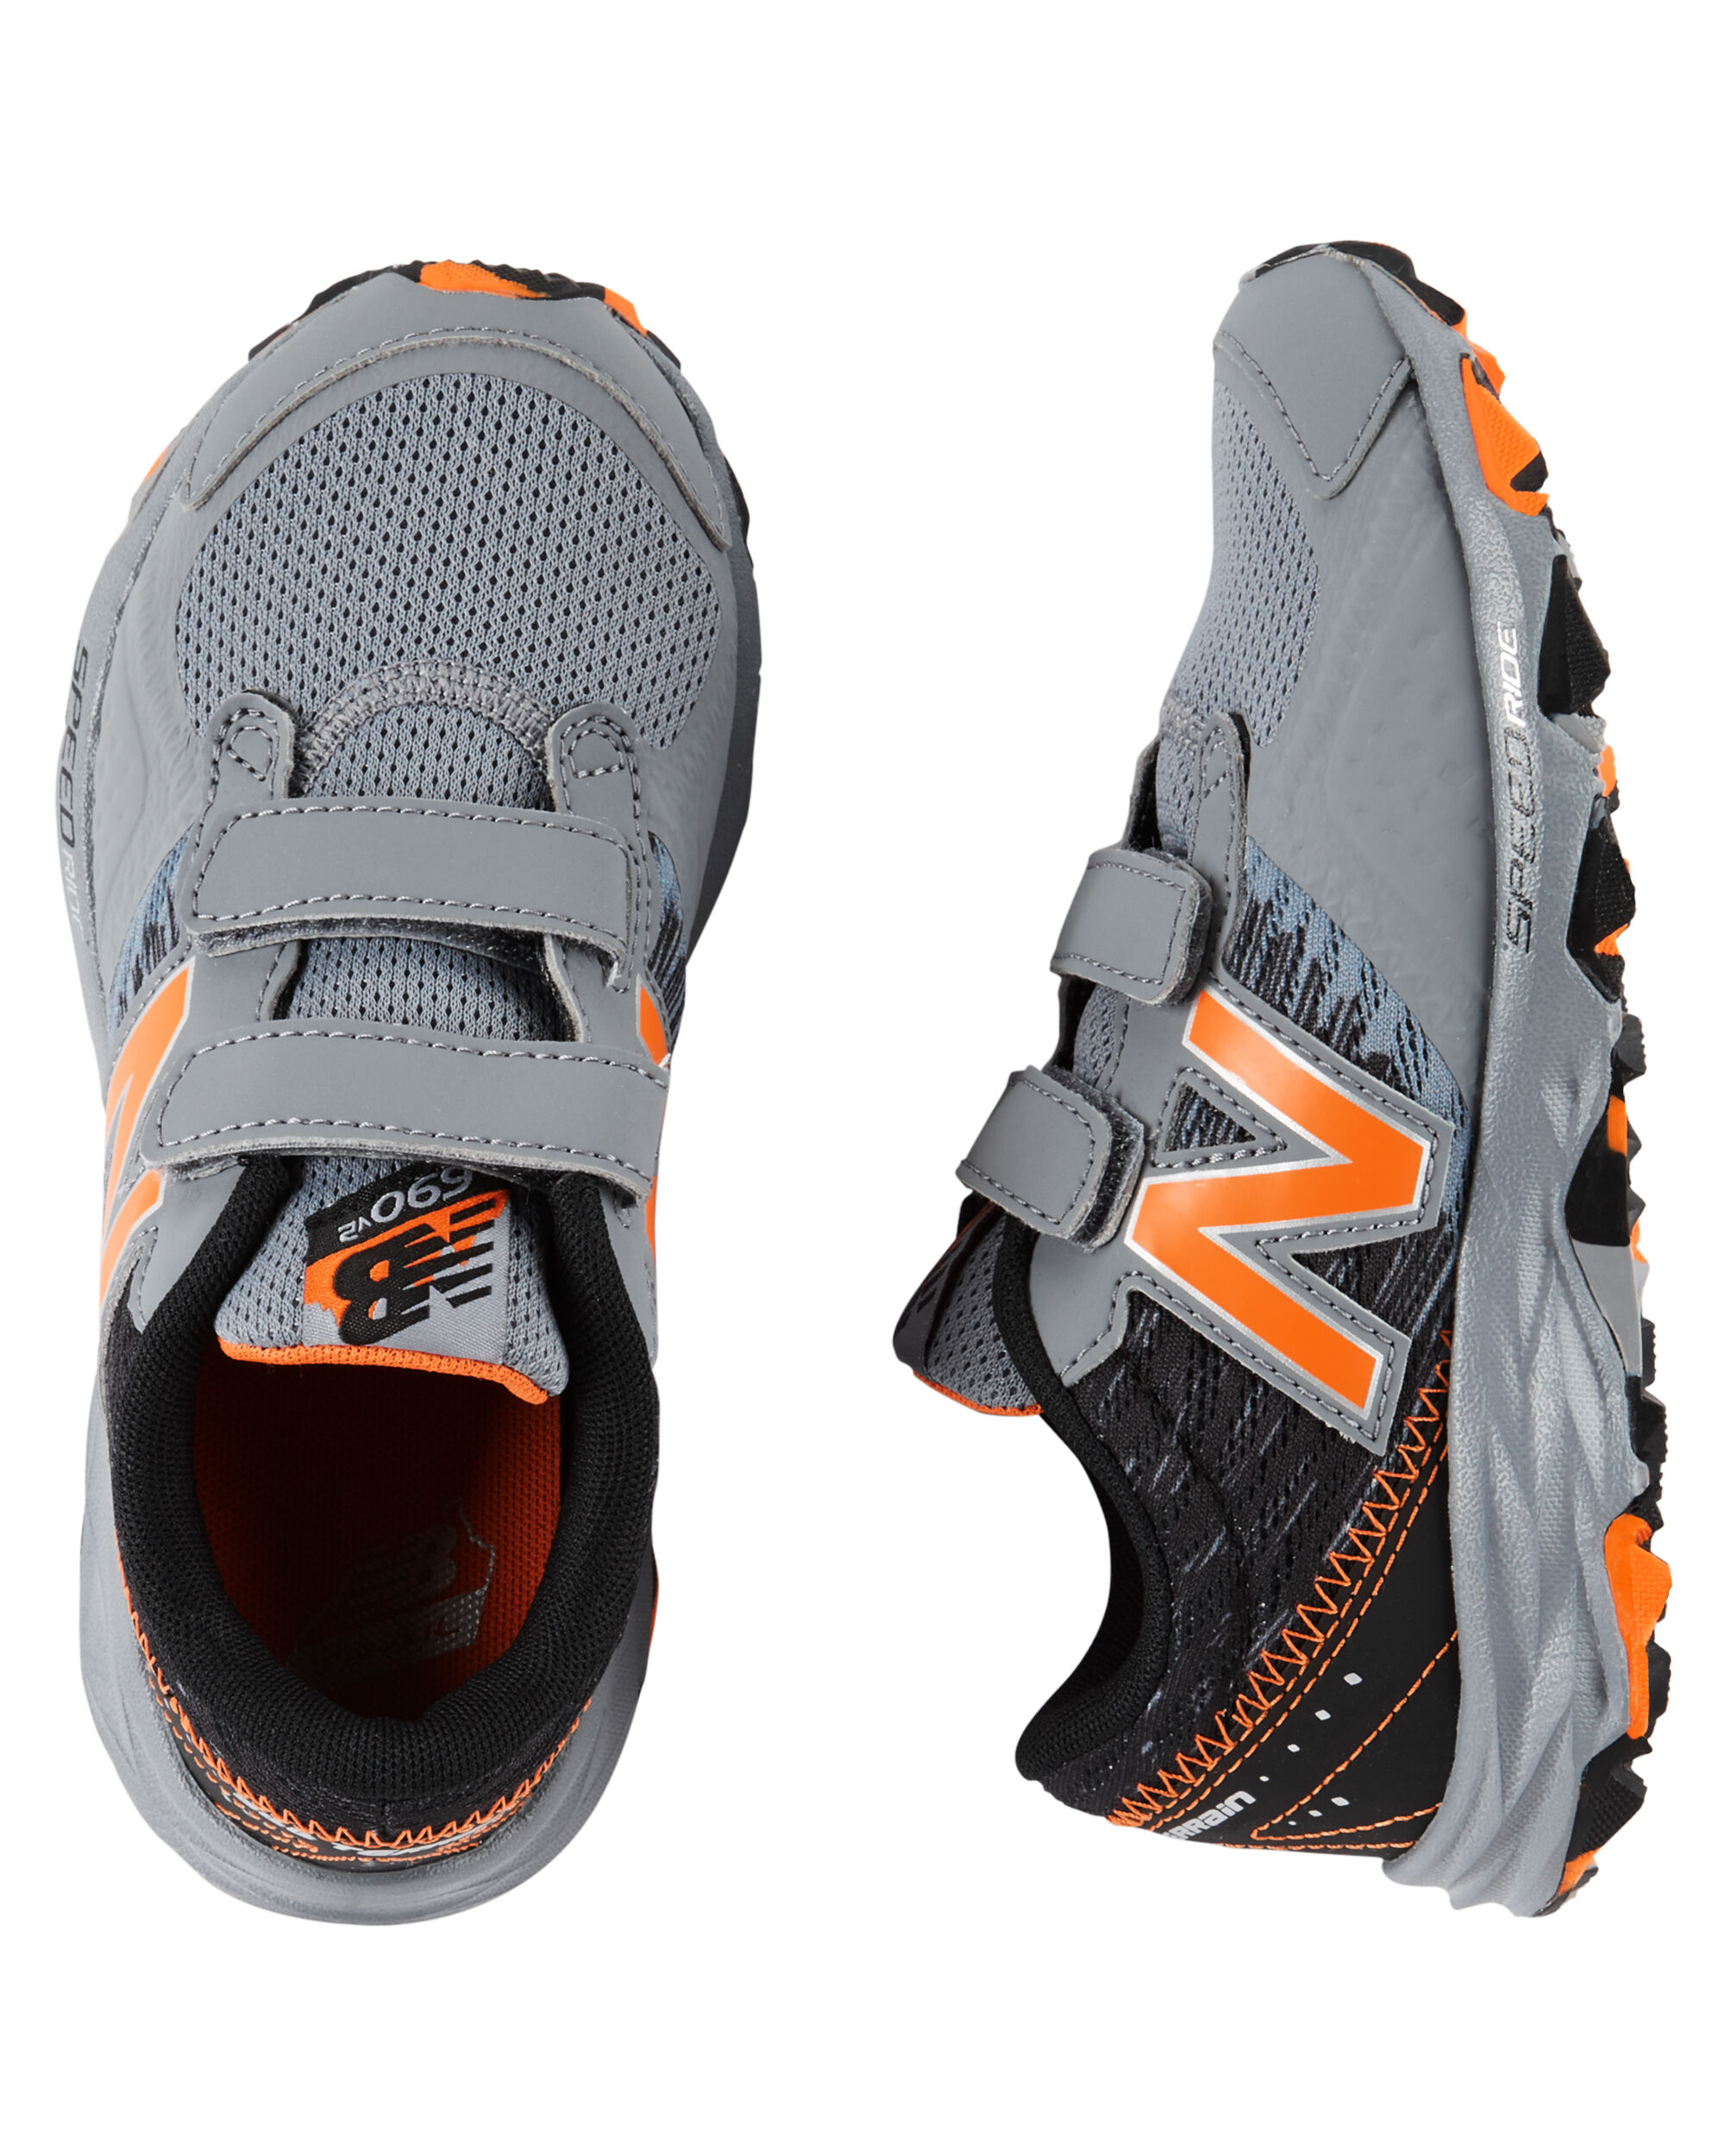 new balance 690v2. images. new balance hook and loop 690v2 trail sneakers